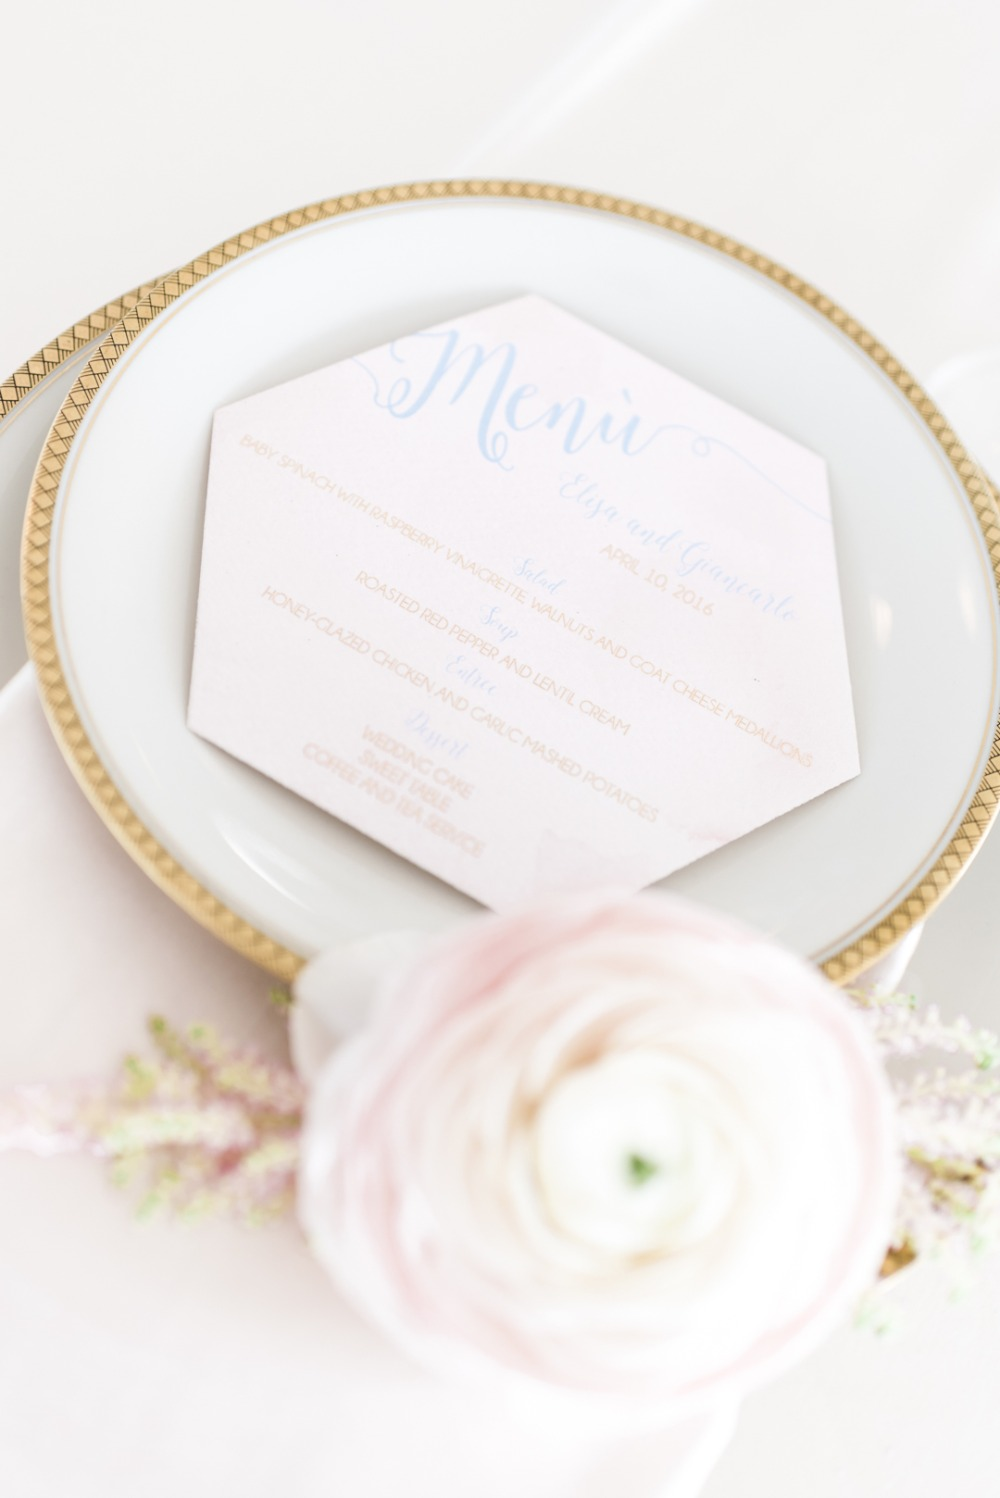 hexagon wedding menu